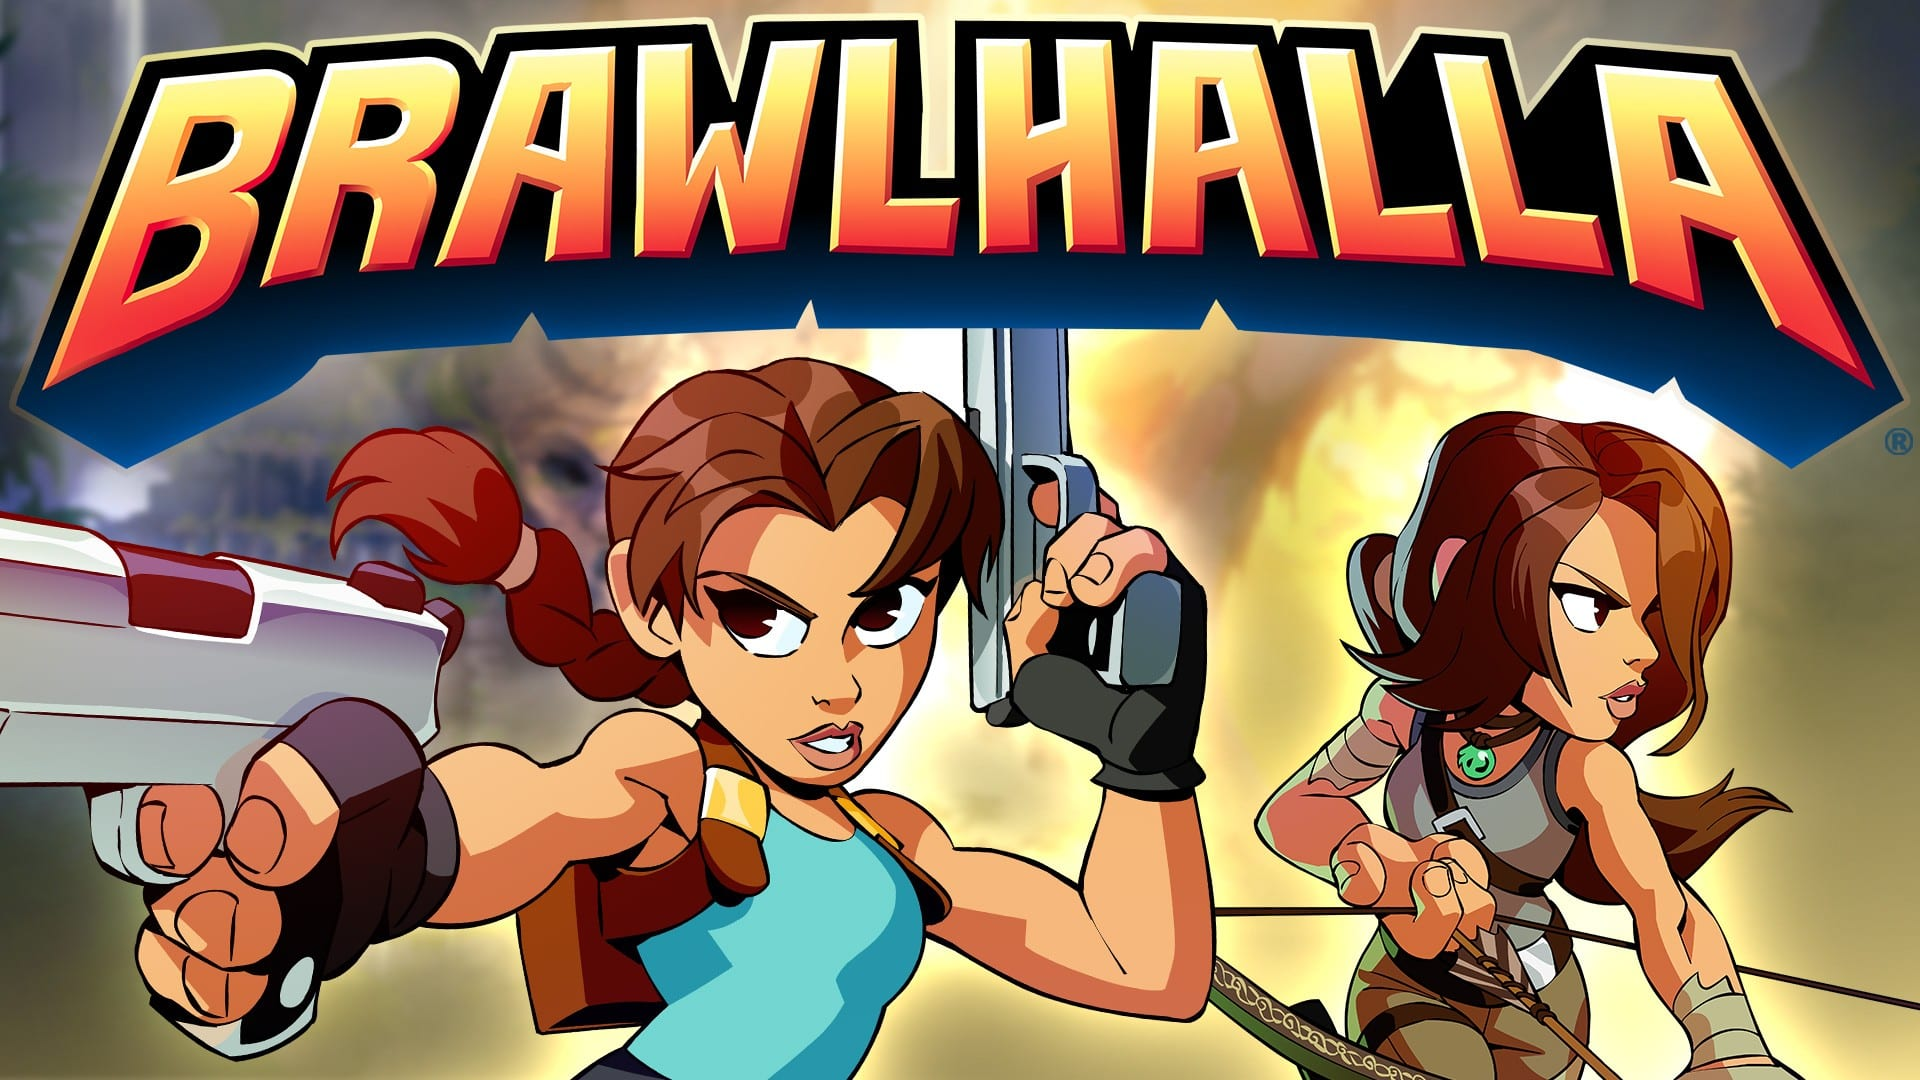 Lara Croft From Crystal Dynamics' Tomb Raider Joins BRAWLHALLA As An Epic Crossover Today